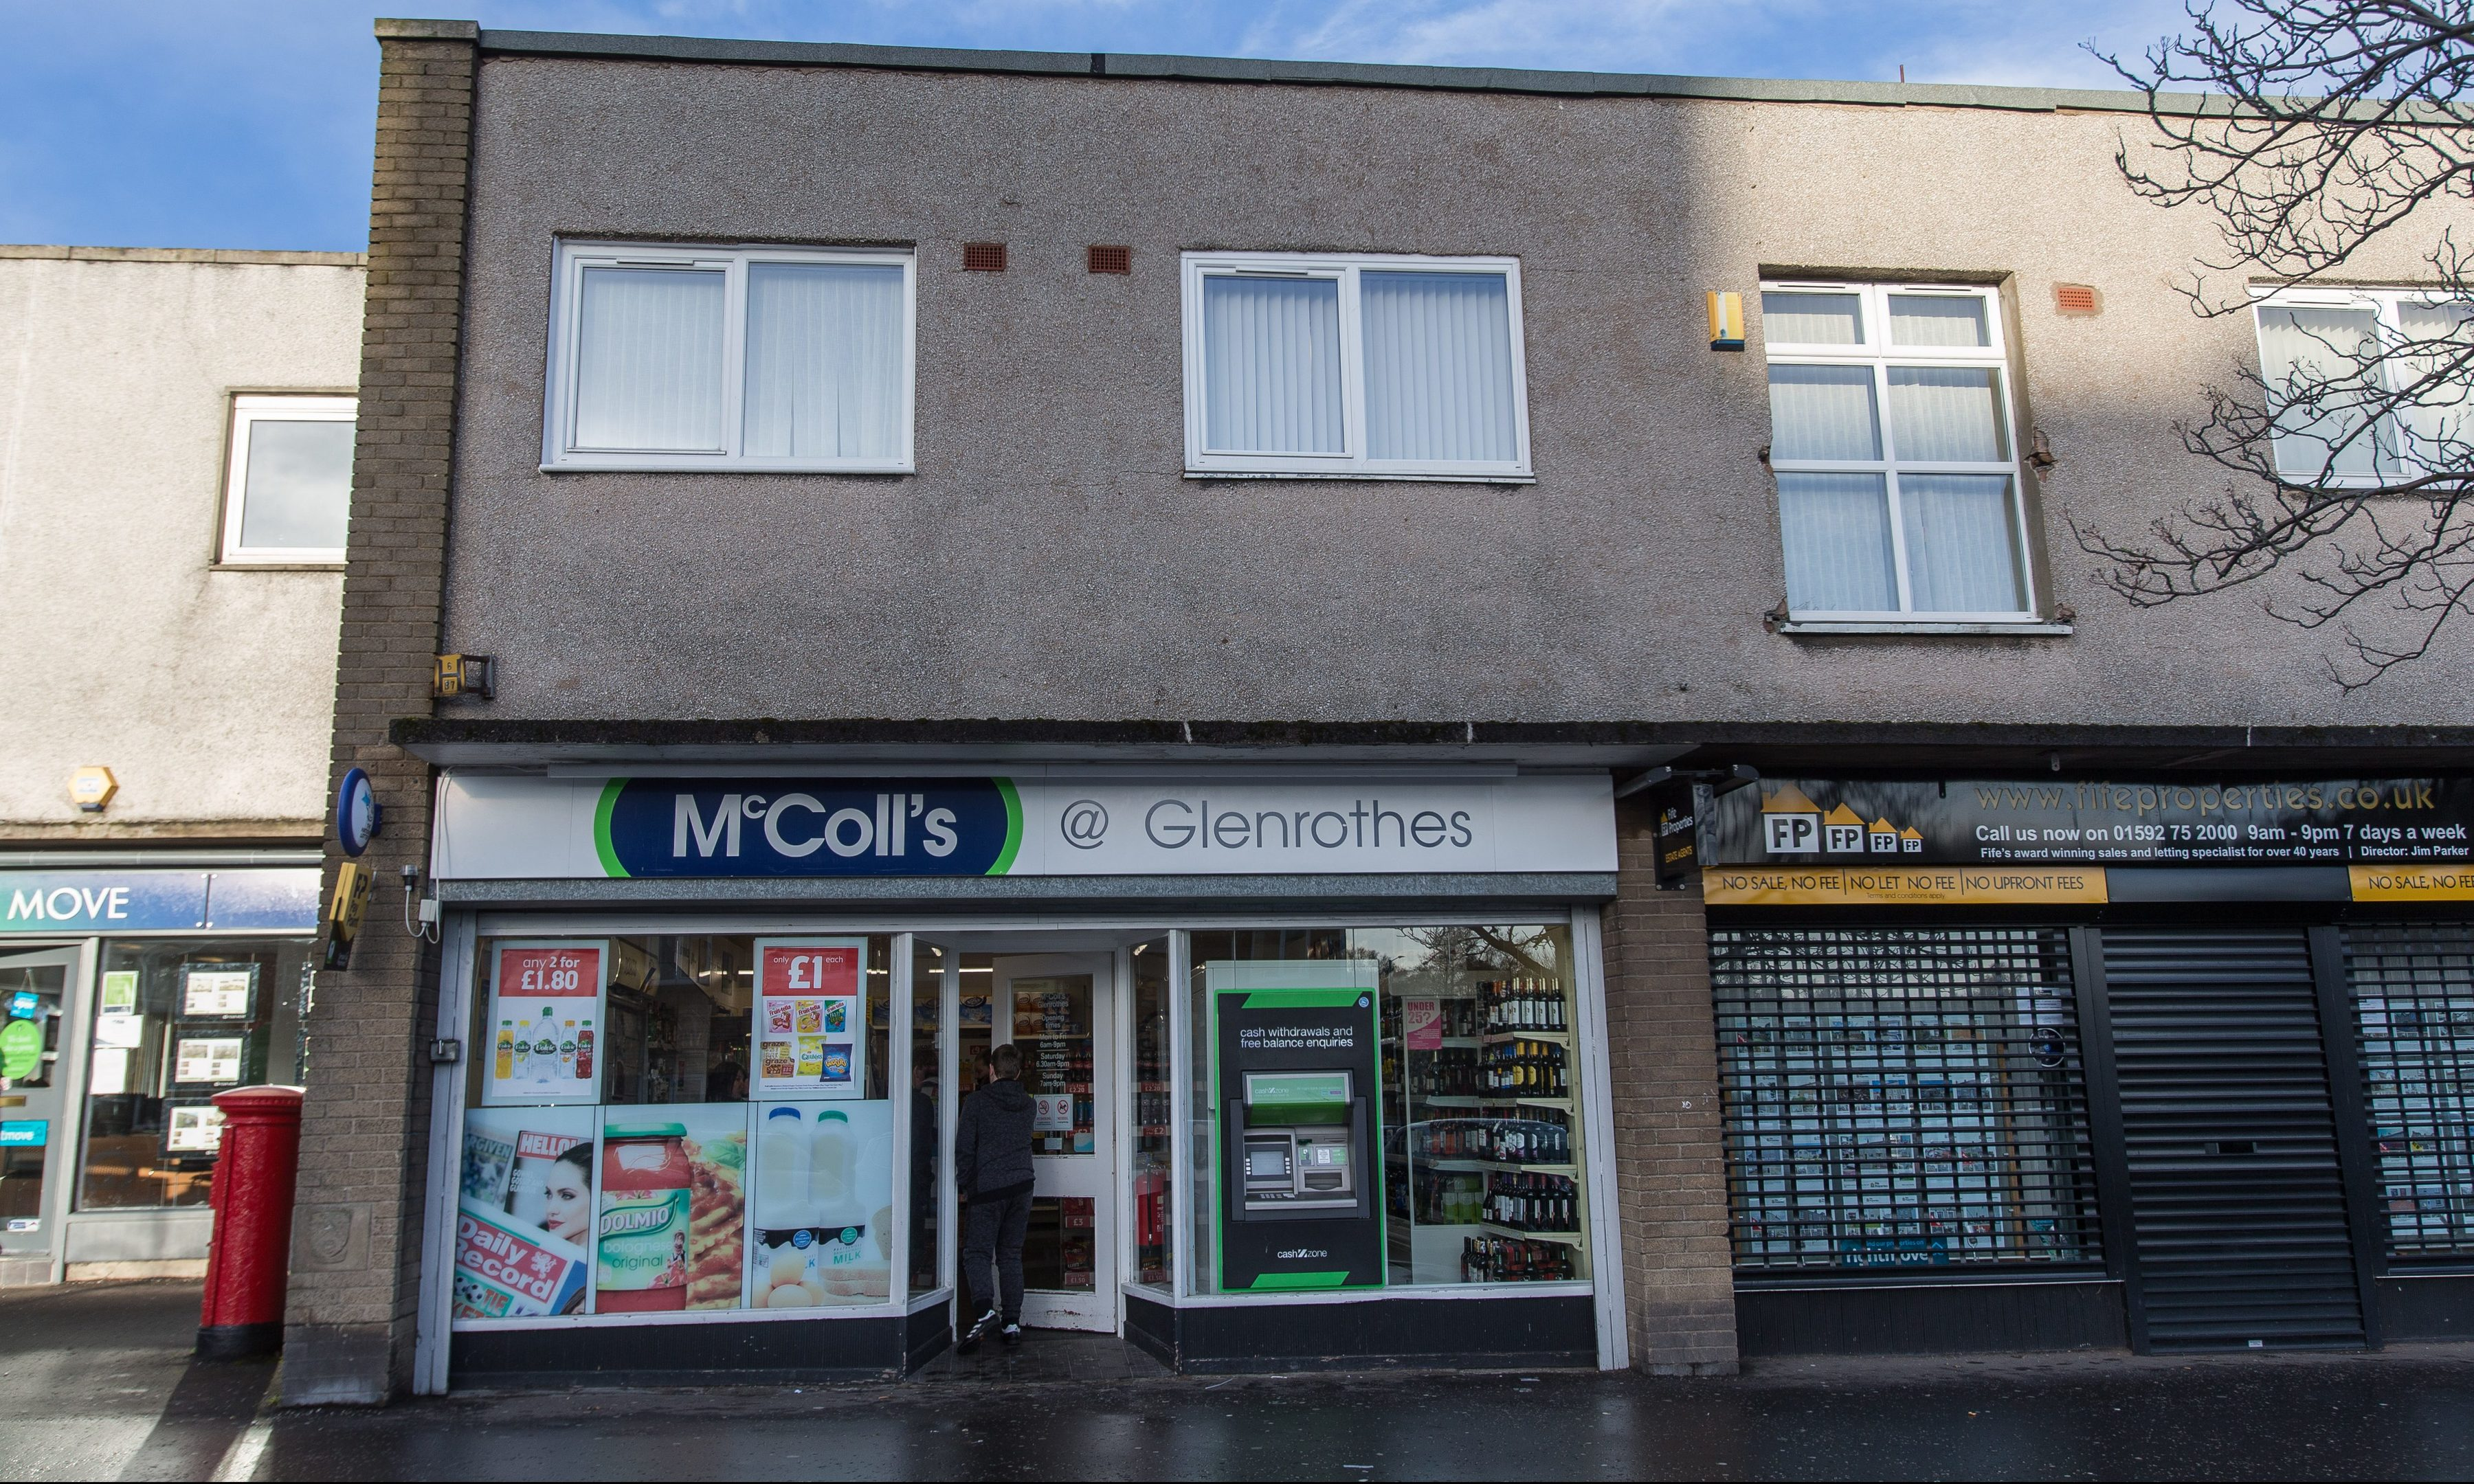 McColls on North Street, Glenrothes.